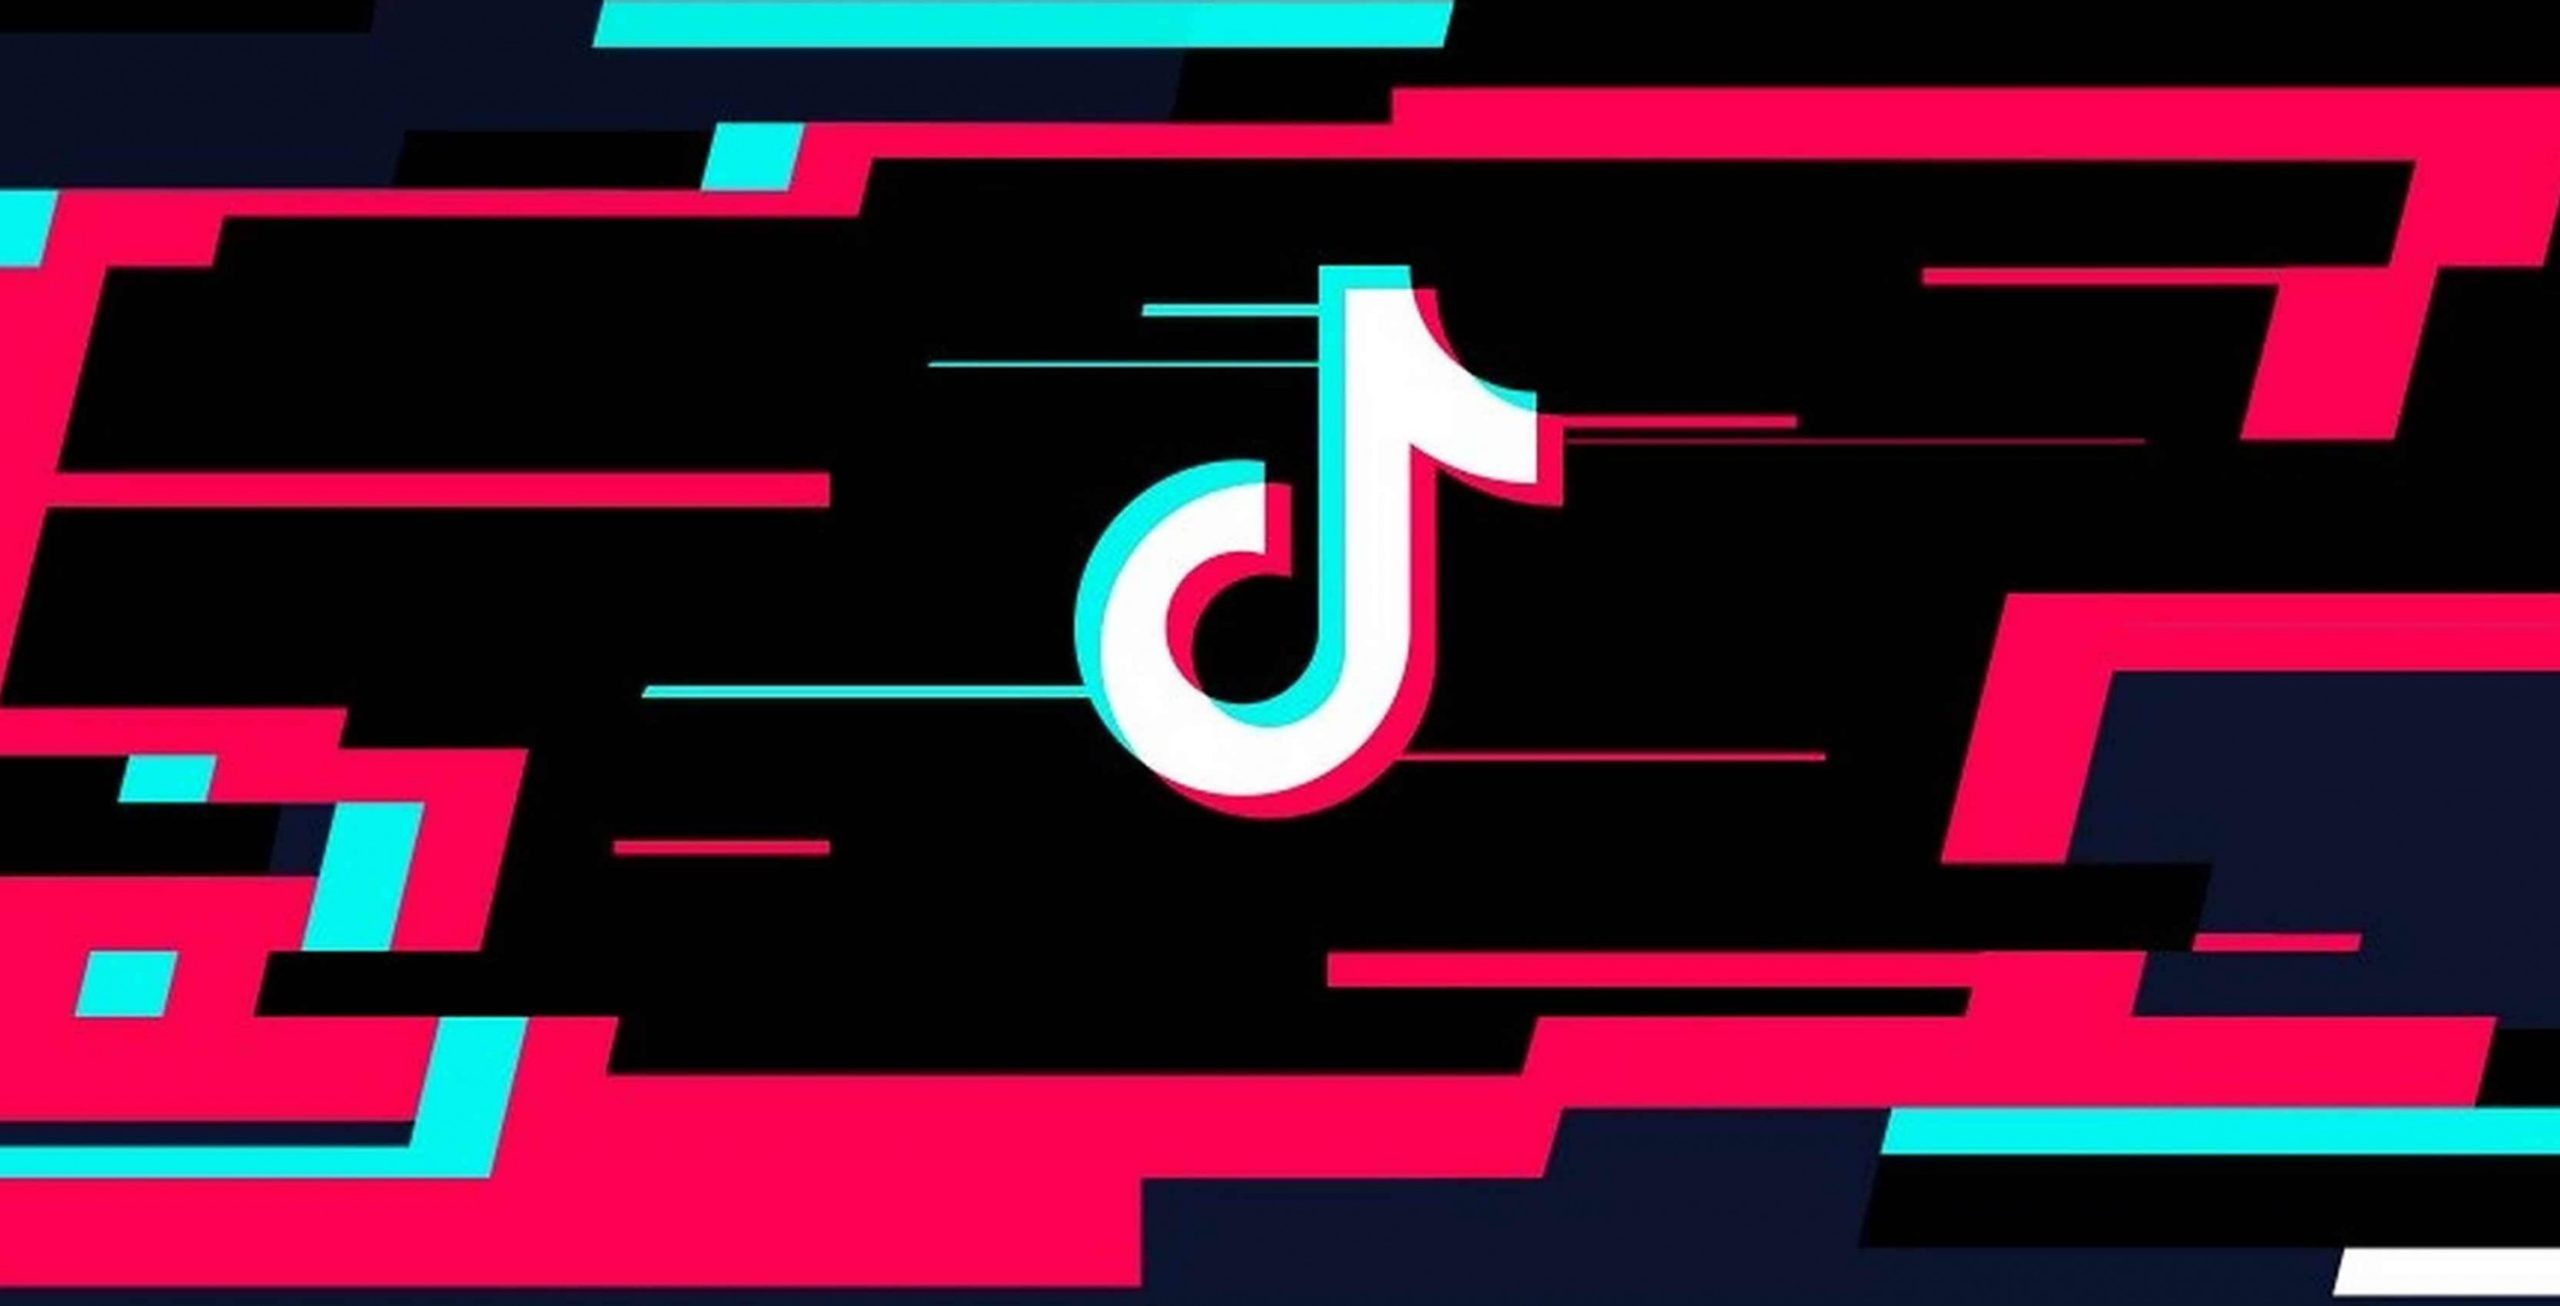 TikTok confirmed the lawsuit against Trump